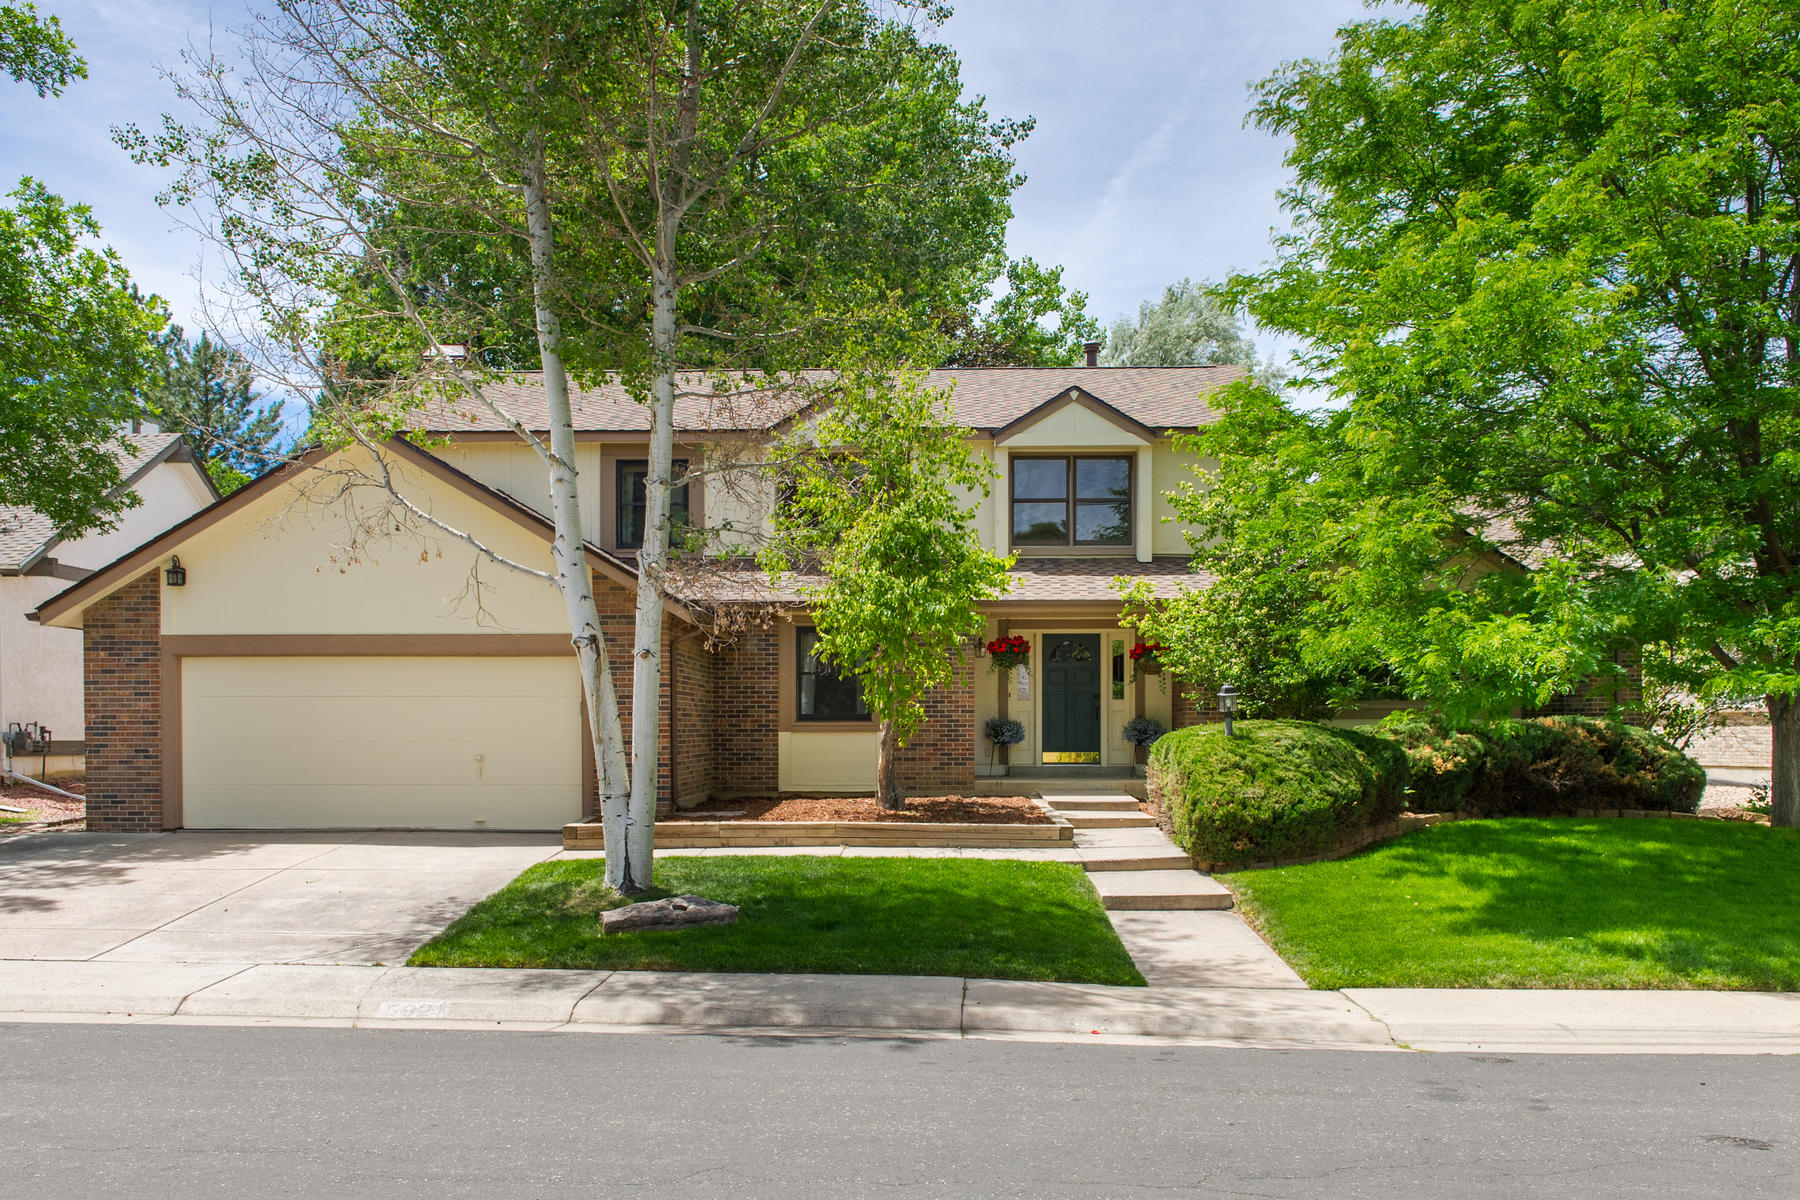 Single Family Home for Active at 5921 South Akron Way Greenwood Village, Colorado 80111 United States